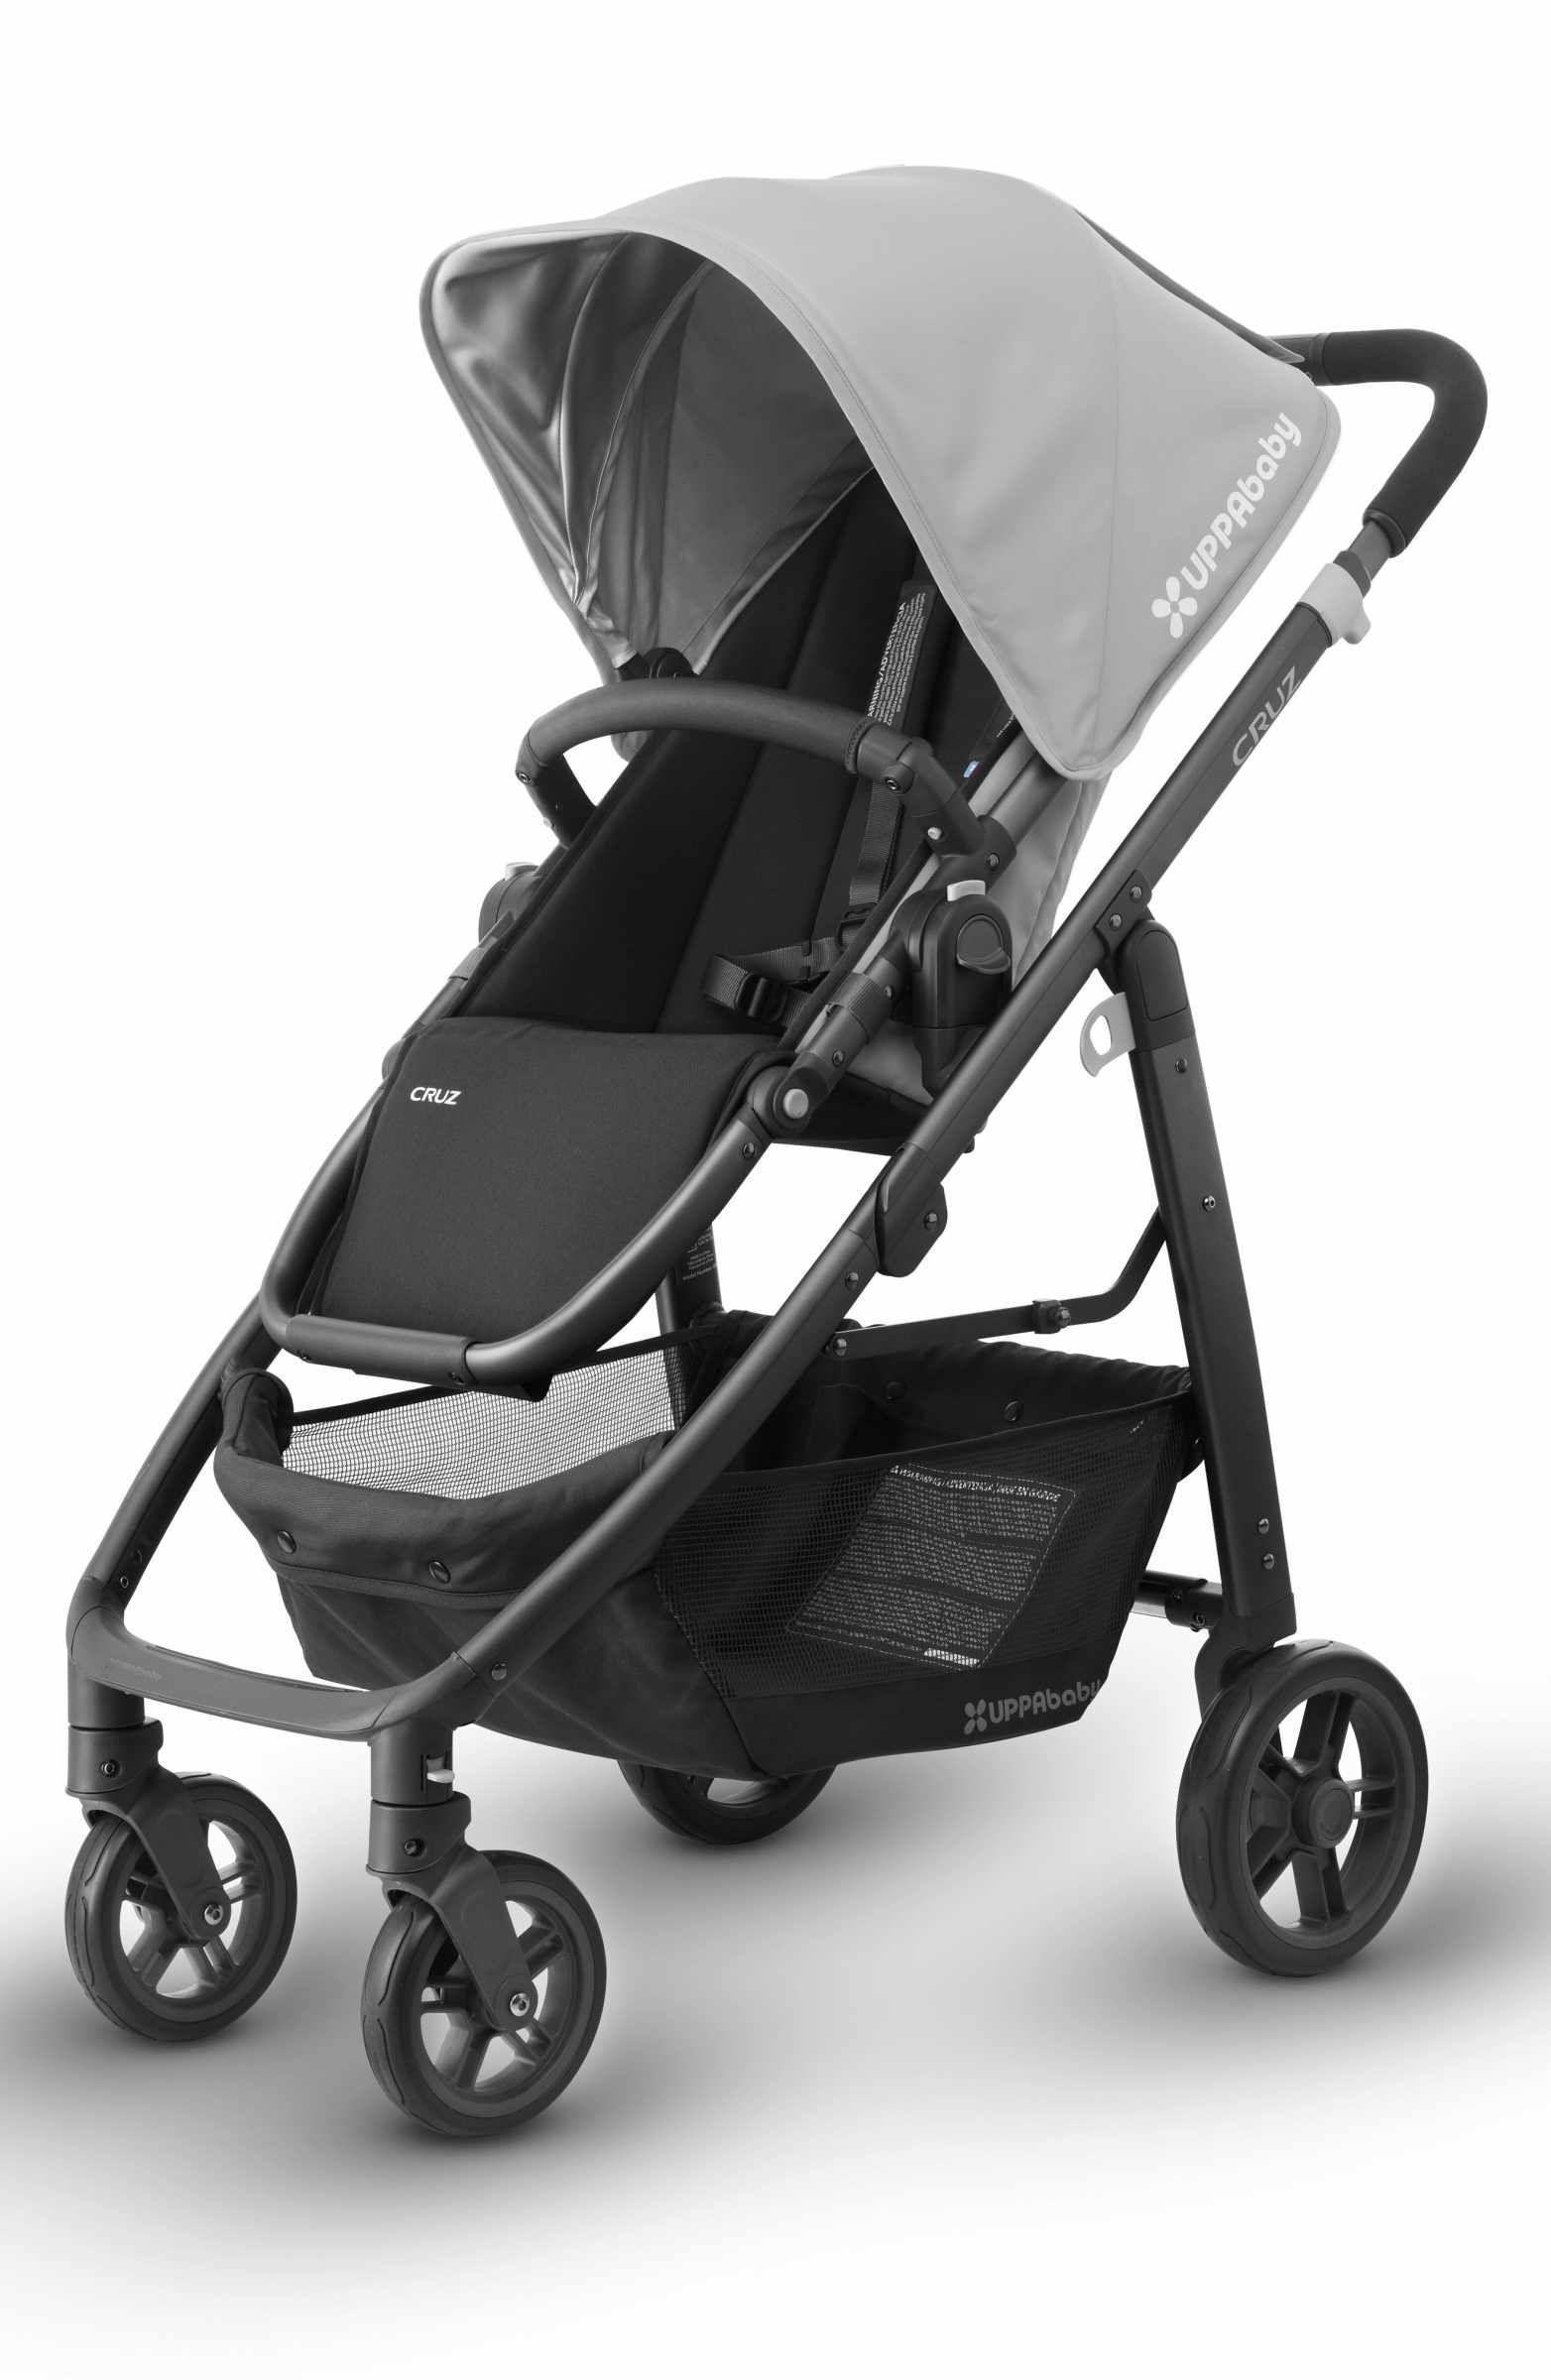 Pin by b on Prams for later in 2020 Uppababy cruz